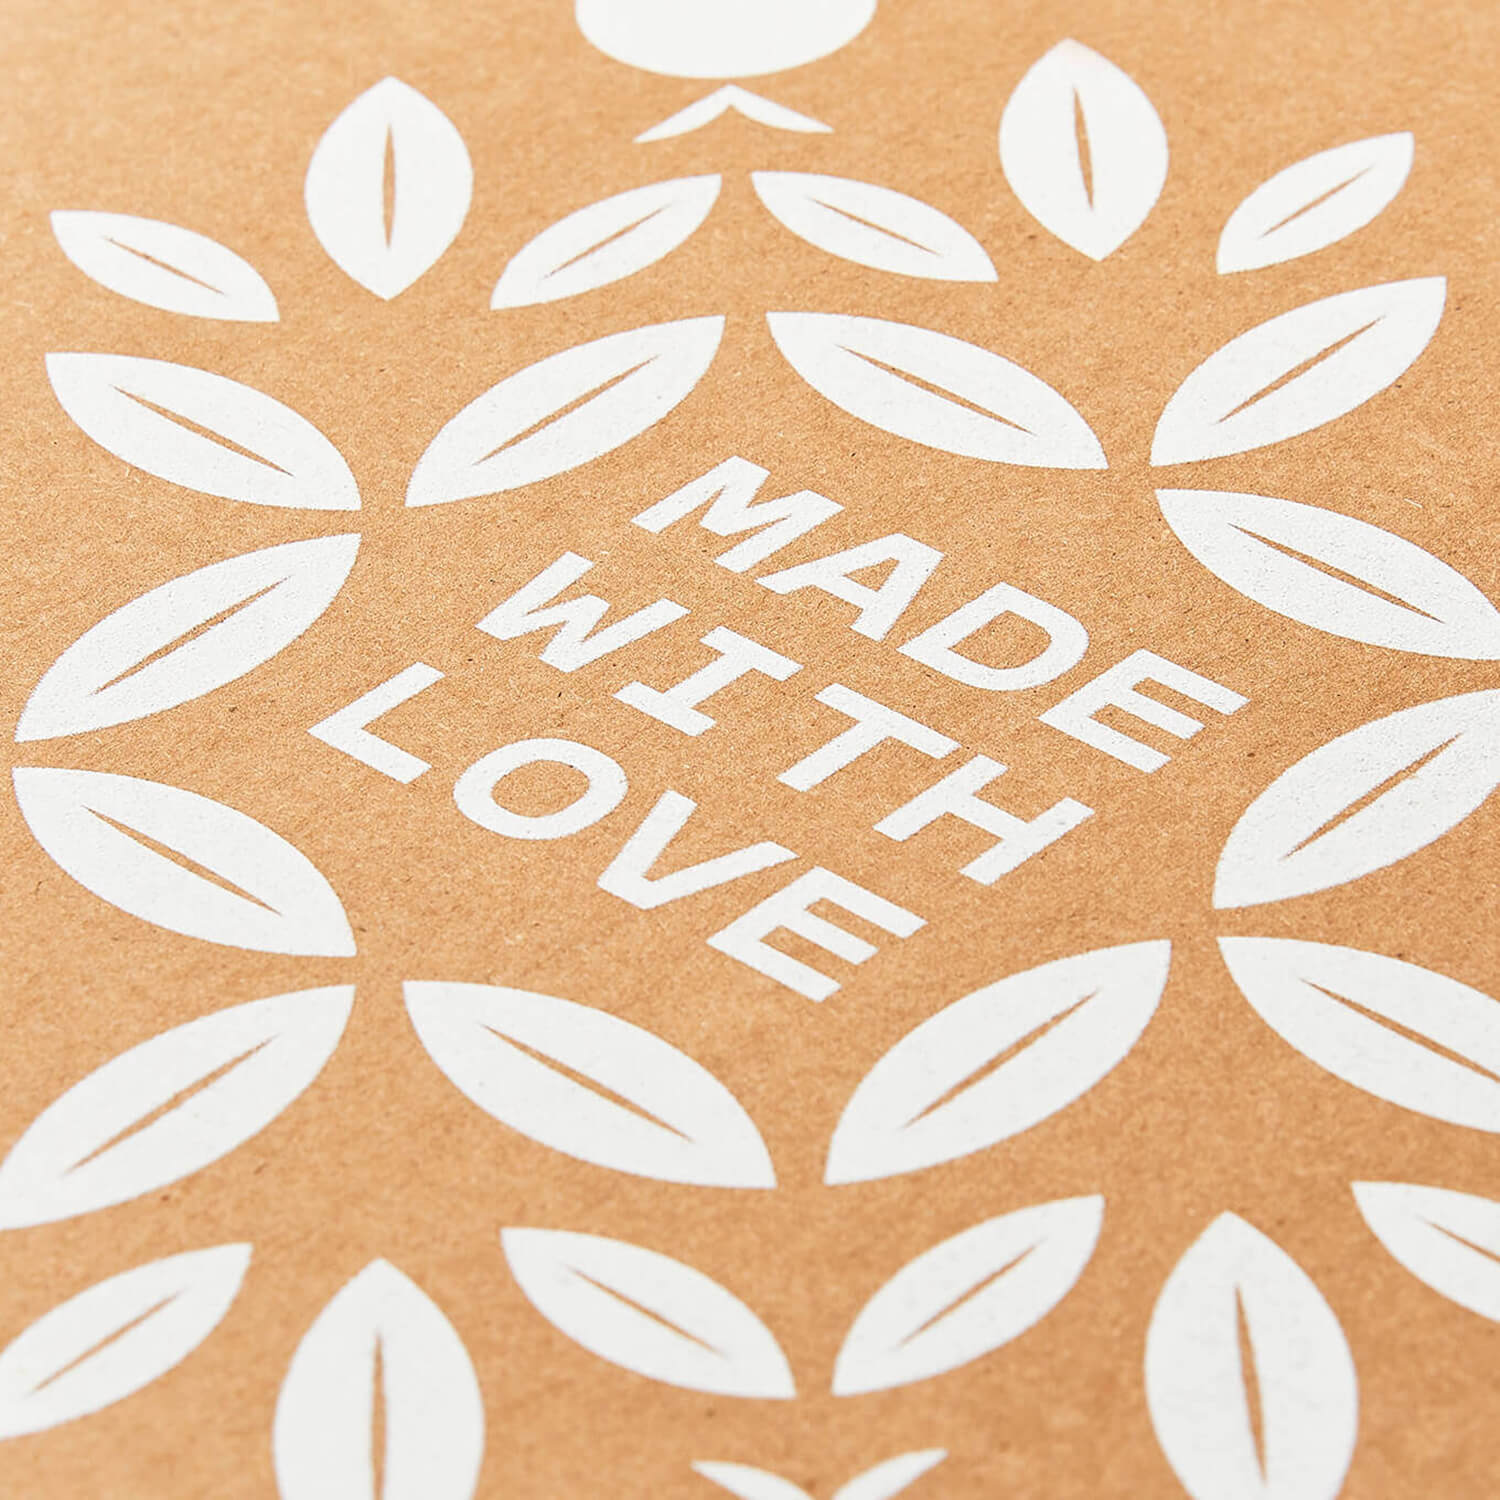 Close-up of 'Made With Love' surrounded by a leafy pattern on the interior lid of the Grazy box